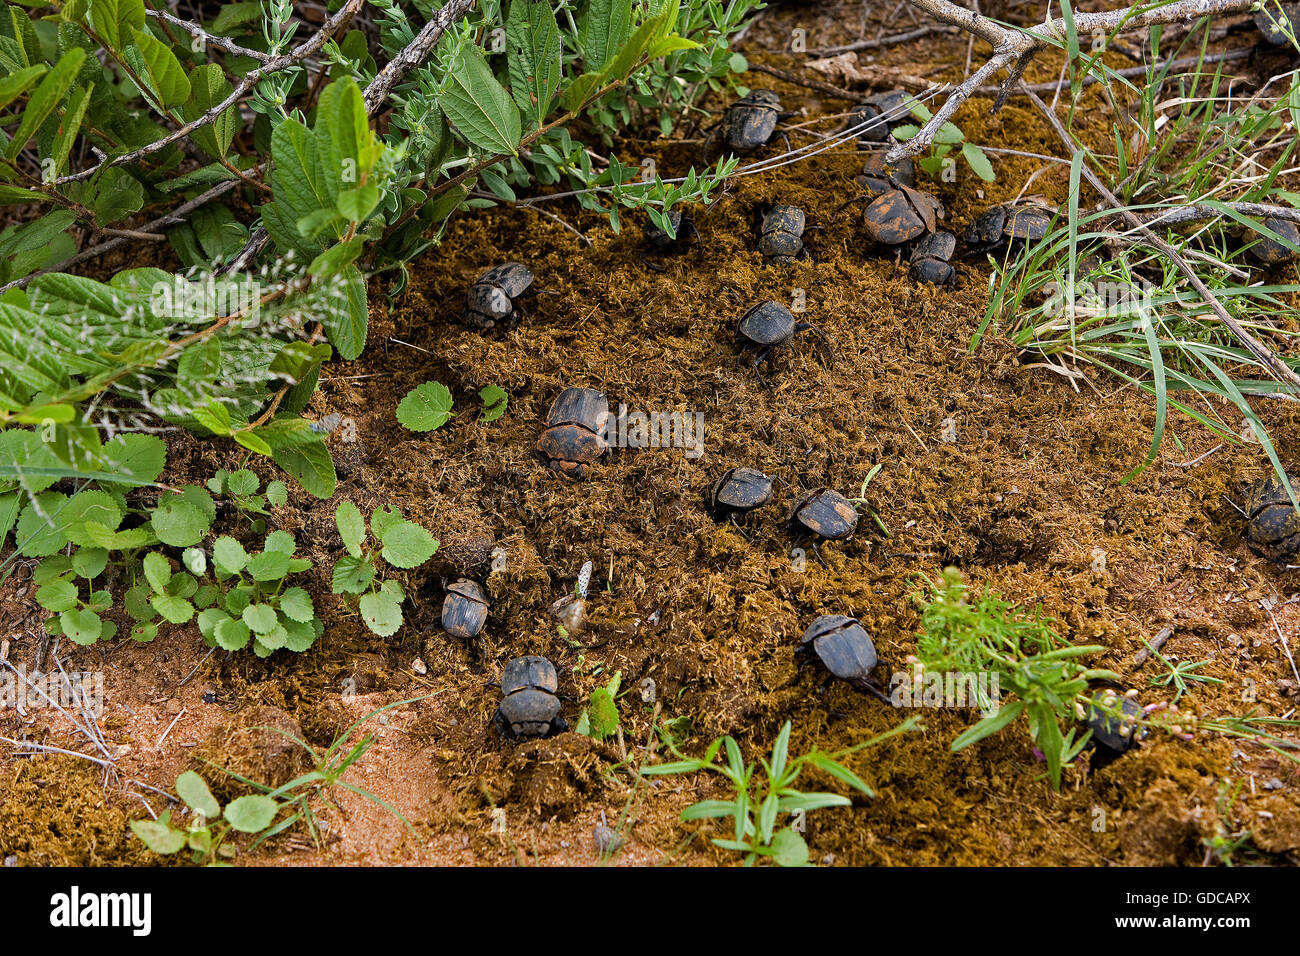 Dung Beetle on Elephant's Dung, Namibie - Stock Image